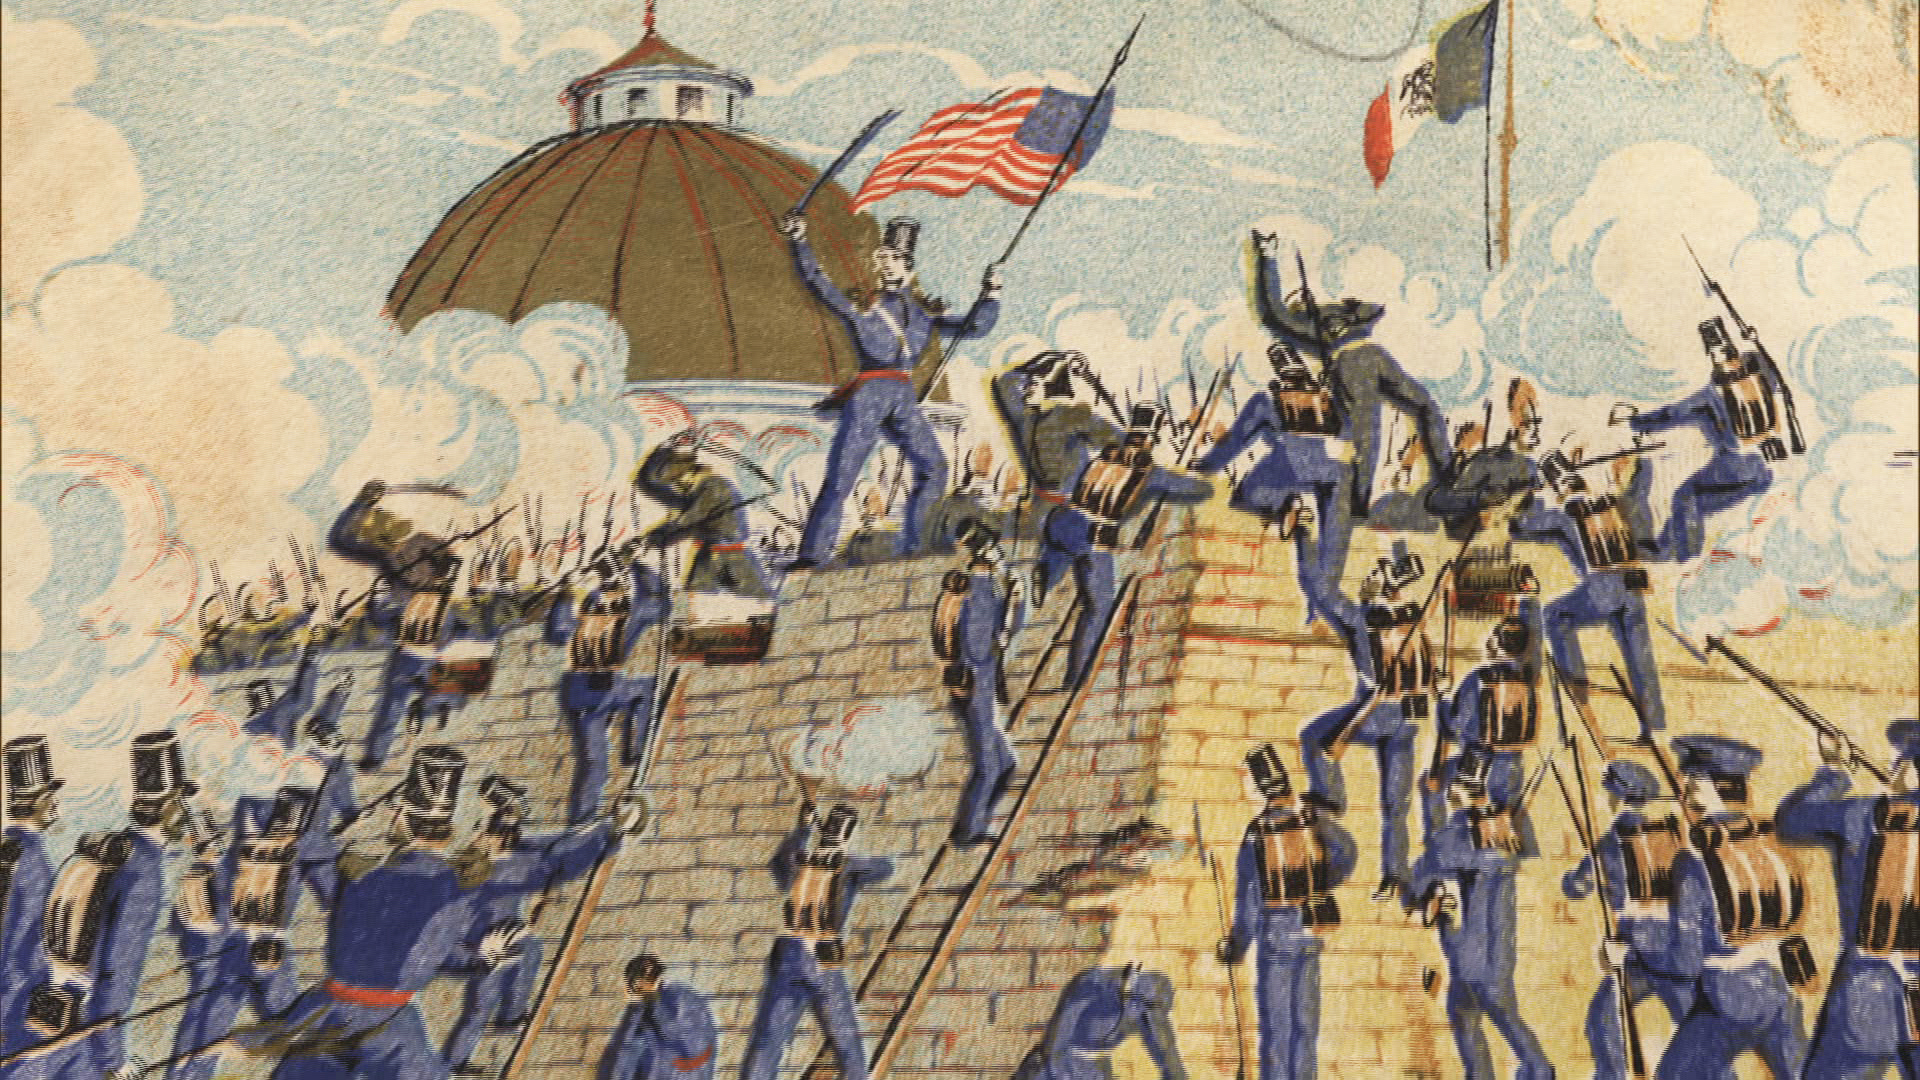 a history of the mexican american war in 1848 The mexican–american war, 1846–1848 after the united states annexed texas in 1845, border disputes led to war with mexico in 1846.